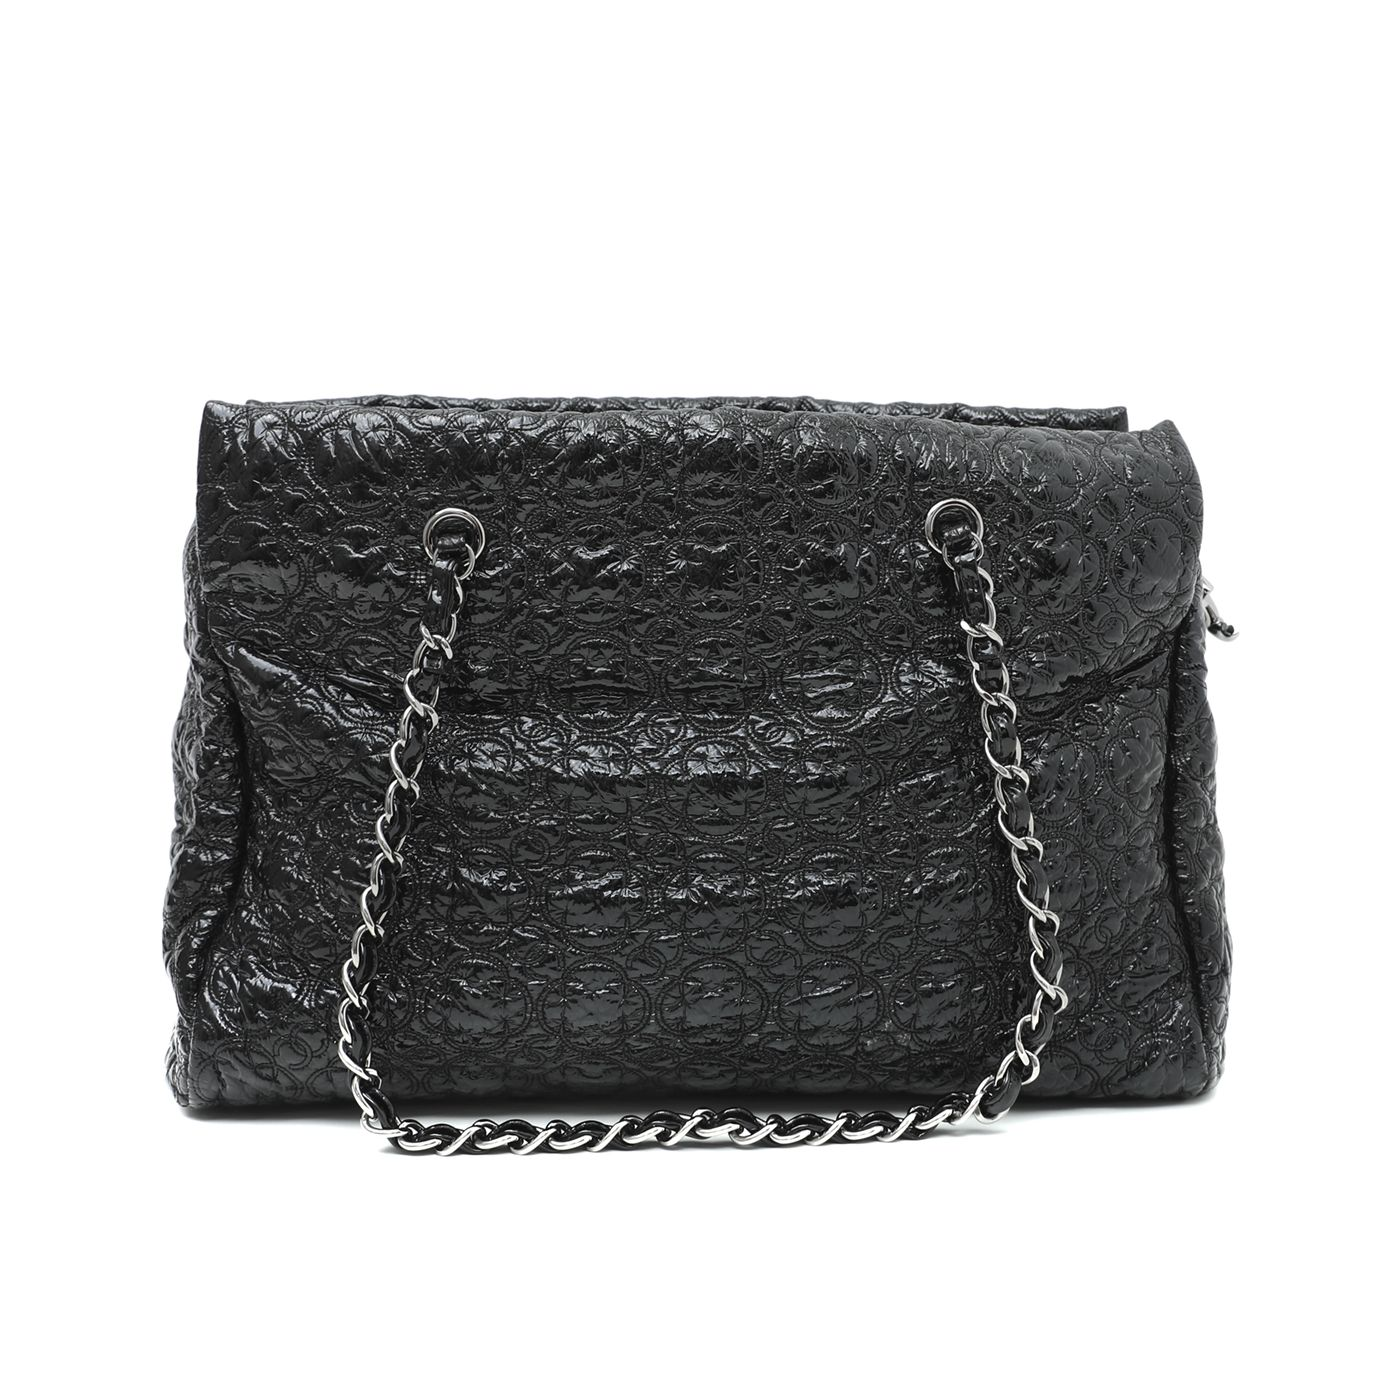 Chanel Black Vinyl Rock In Moscow Tote Bag